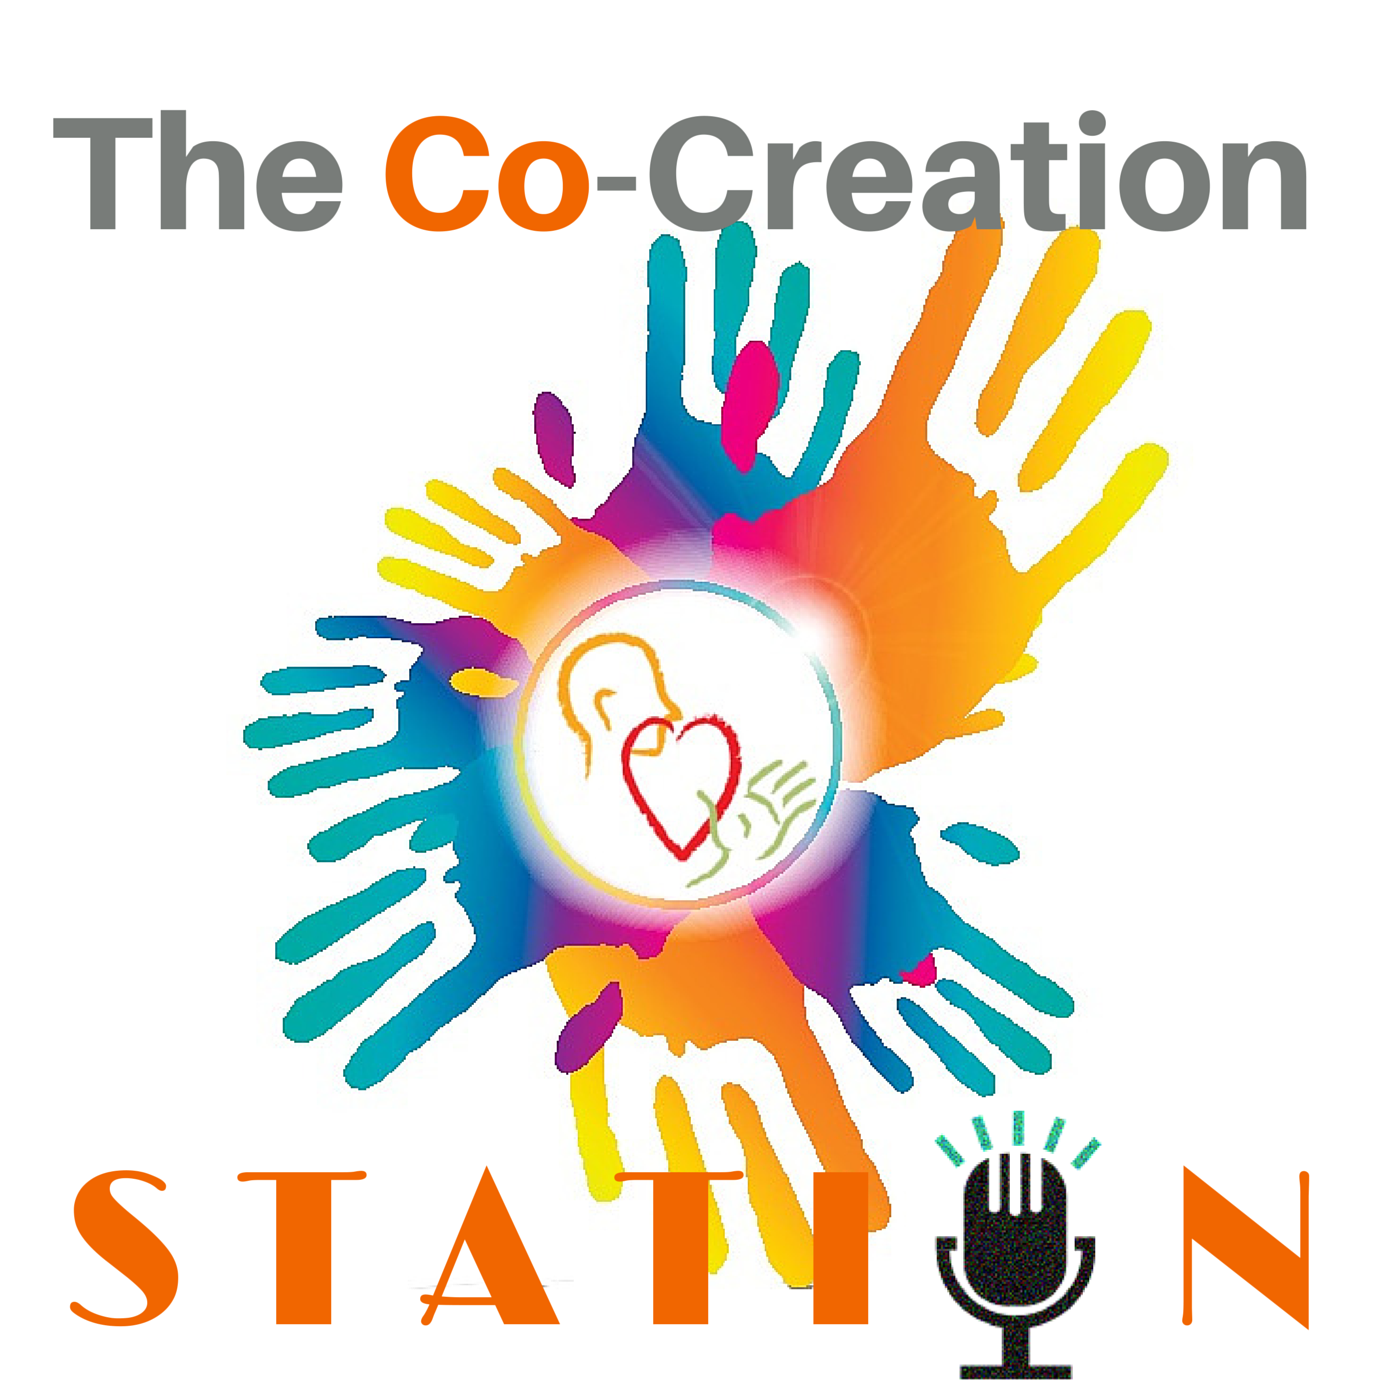 The Co-Creation Station